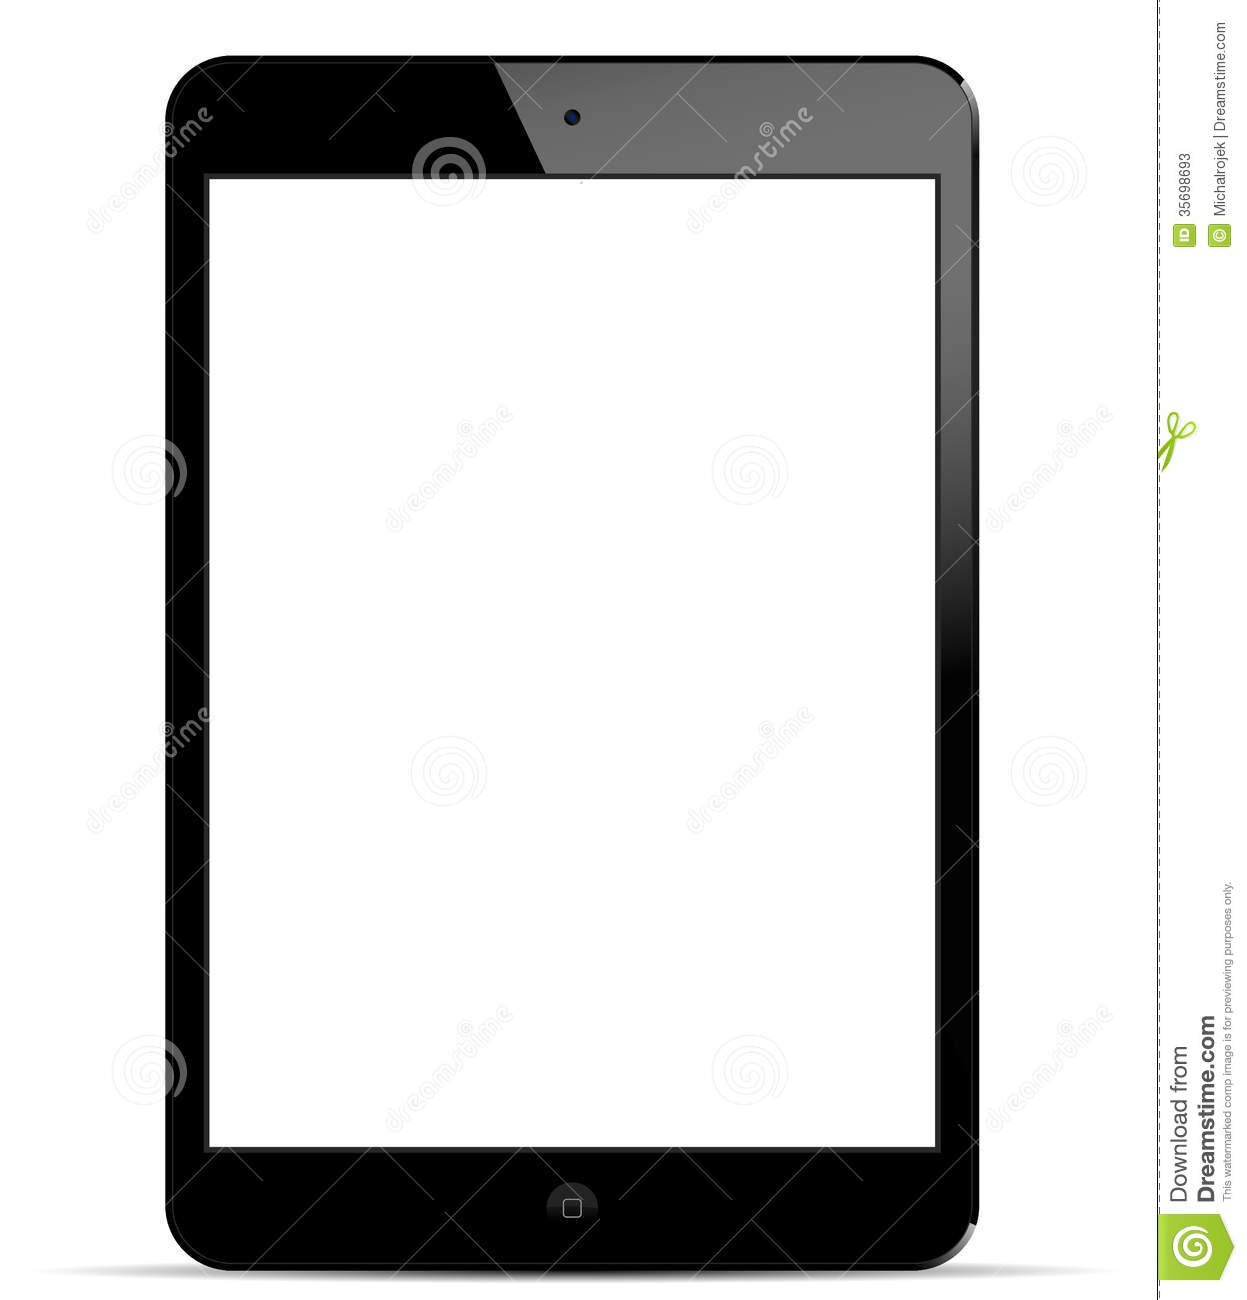 Ipad clipart size jpg black and white stock Ipad 2 clipart dimensions - ClipartFox jpg black and white stock